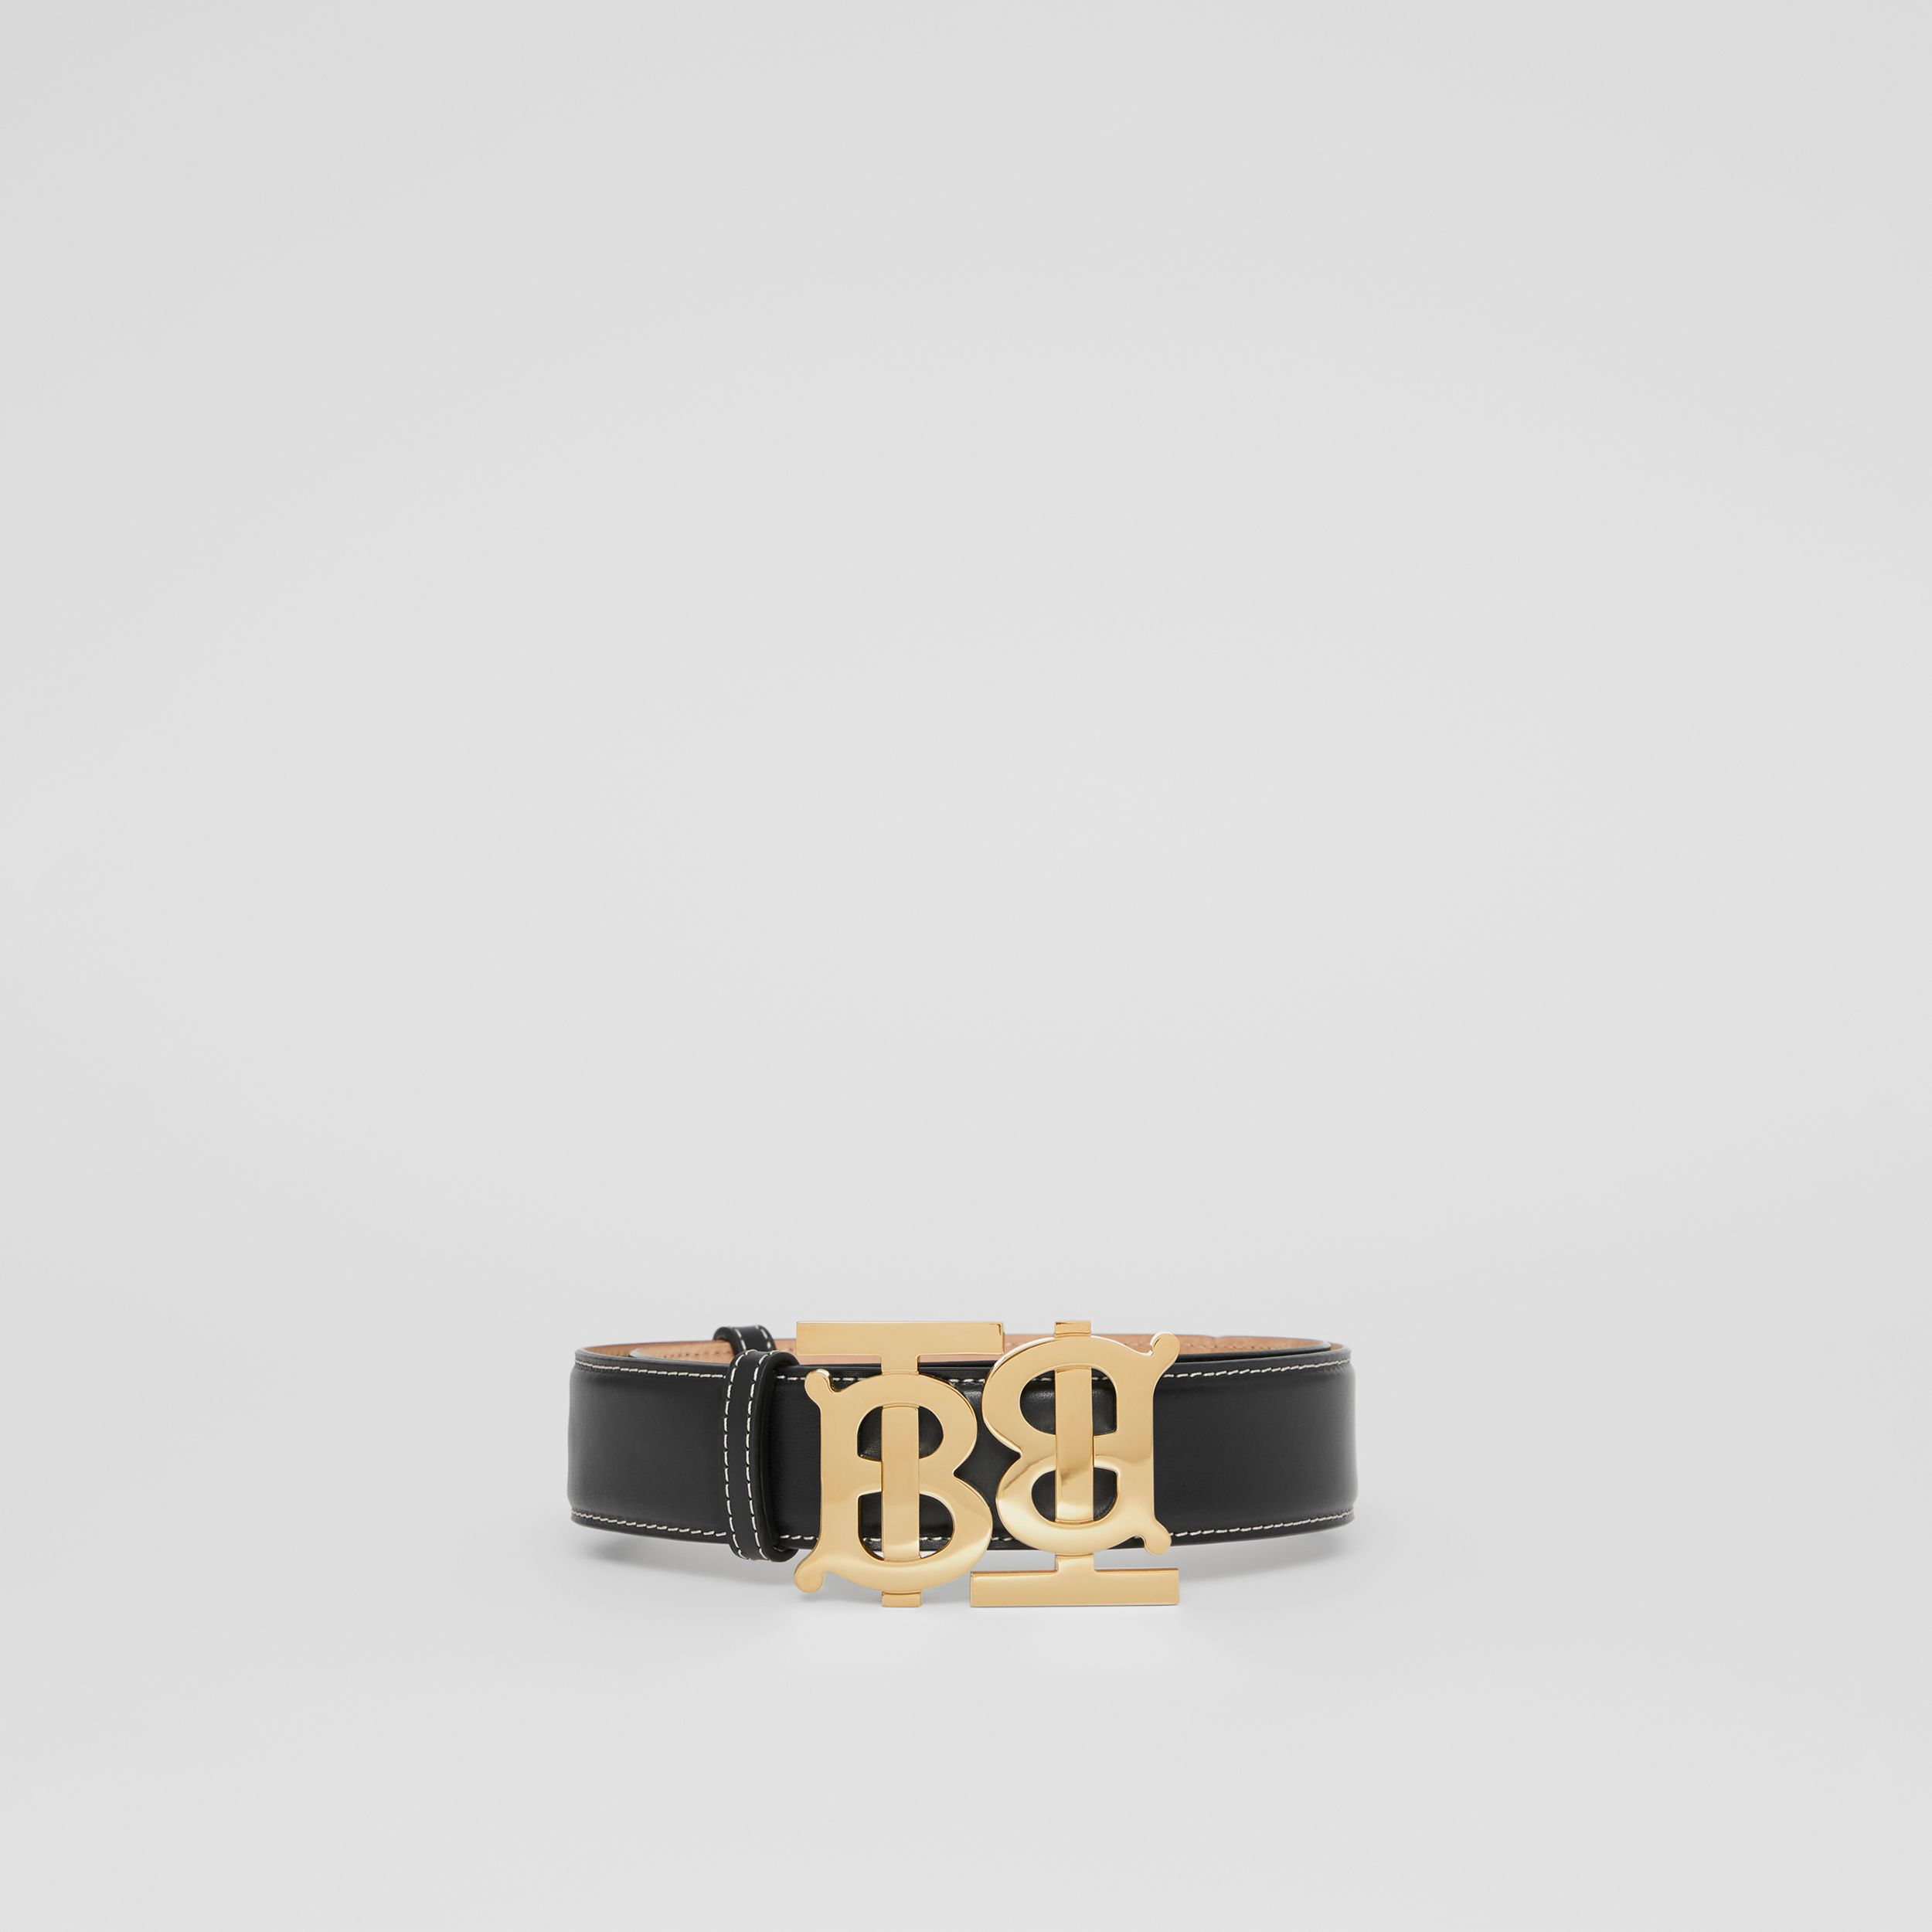 Double Monogram Motif Leather Belt in Black - Women | Burberry - 4